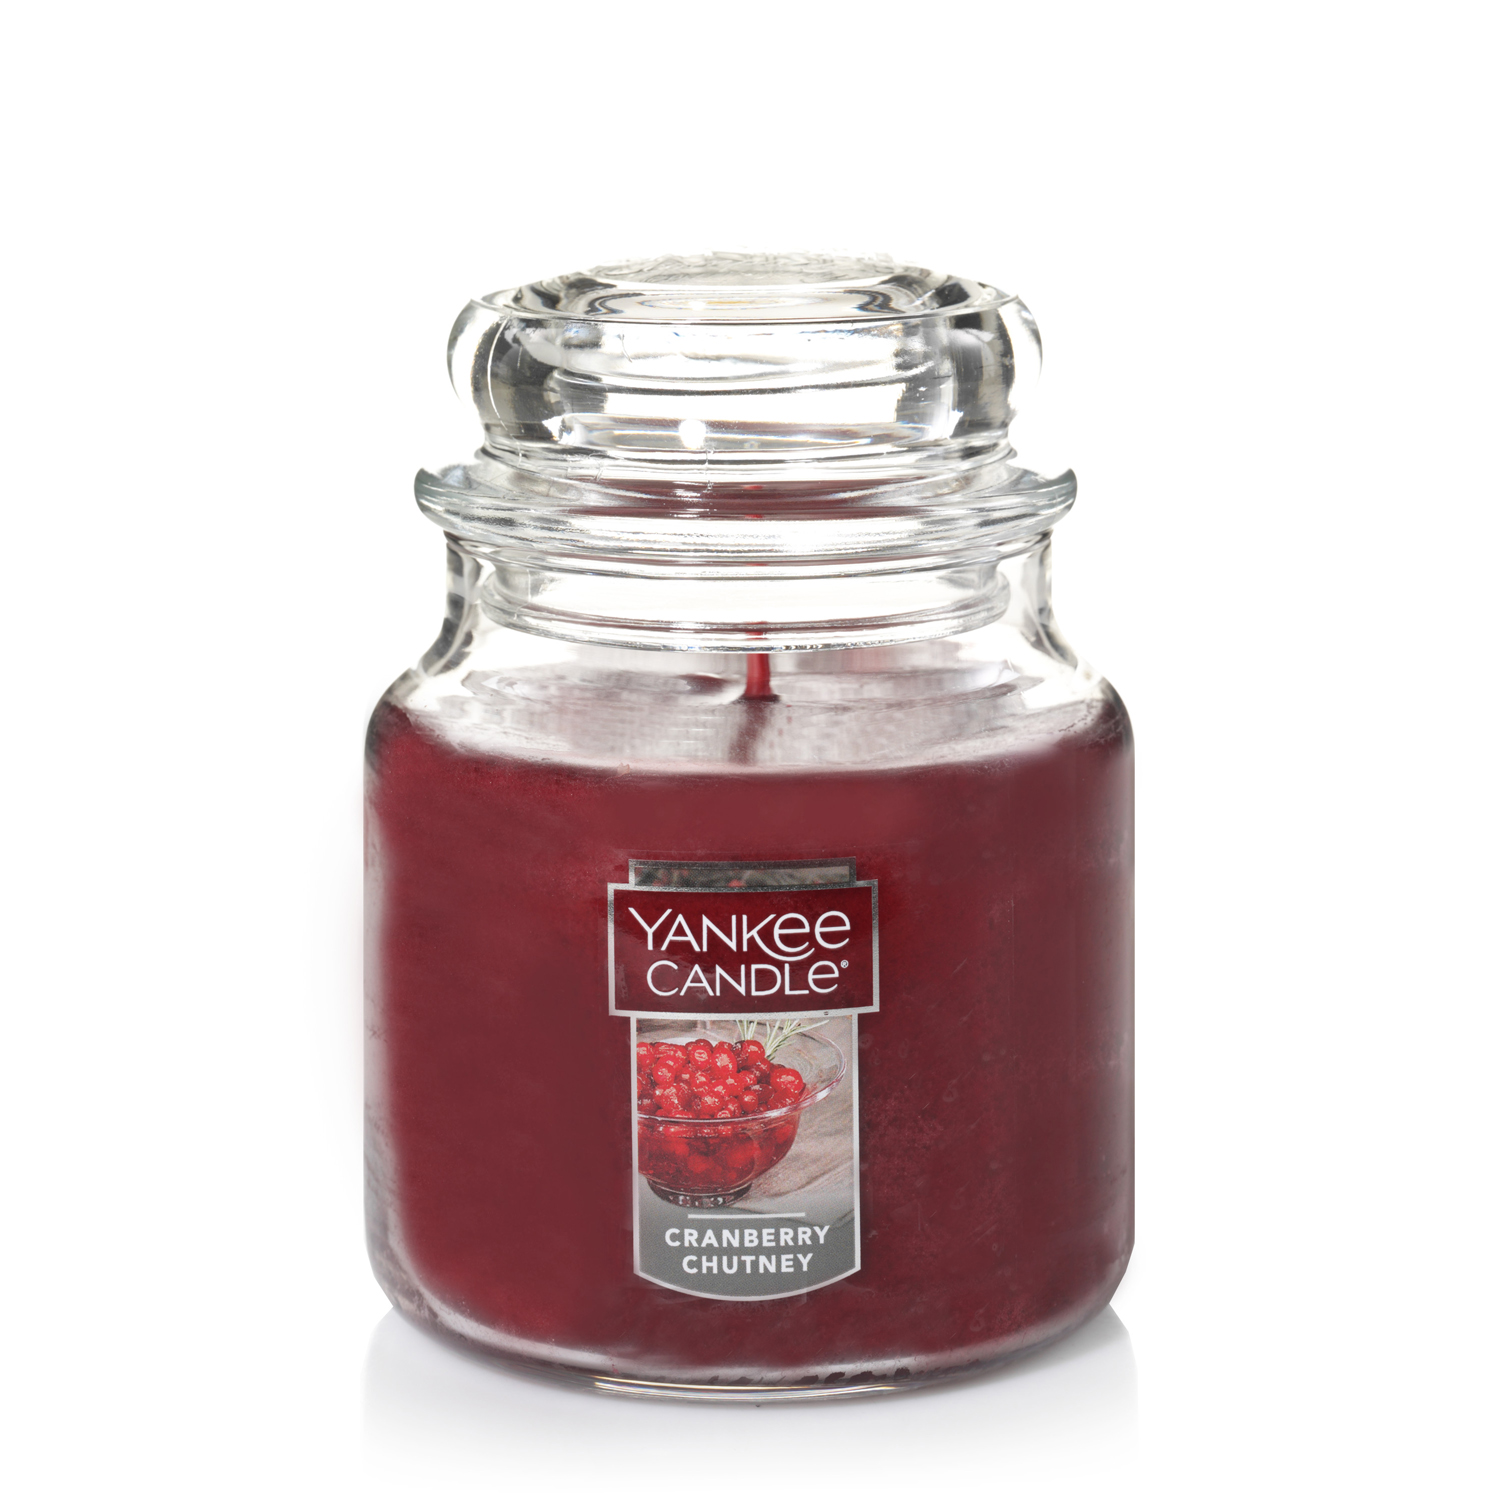 Yankee Candle Large 2-Wick Tumbler Candle, Cranberry Chutney by Newell Brands